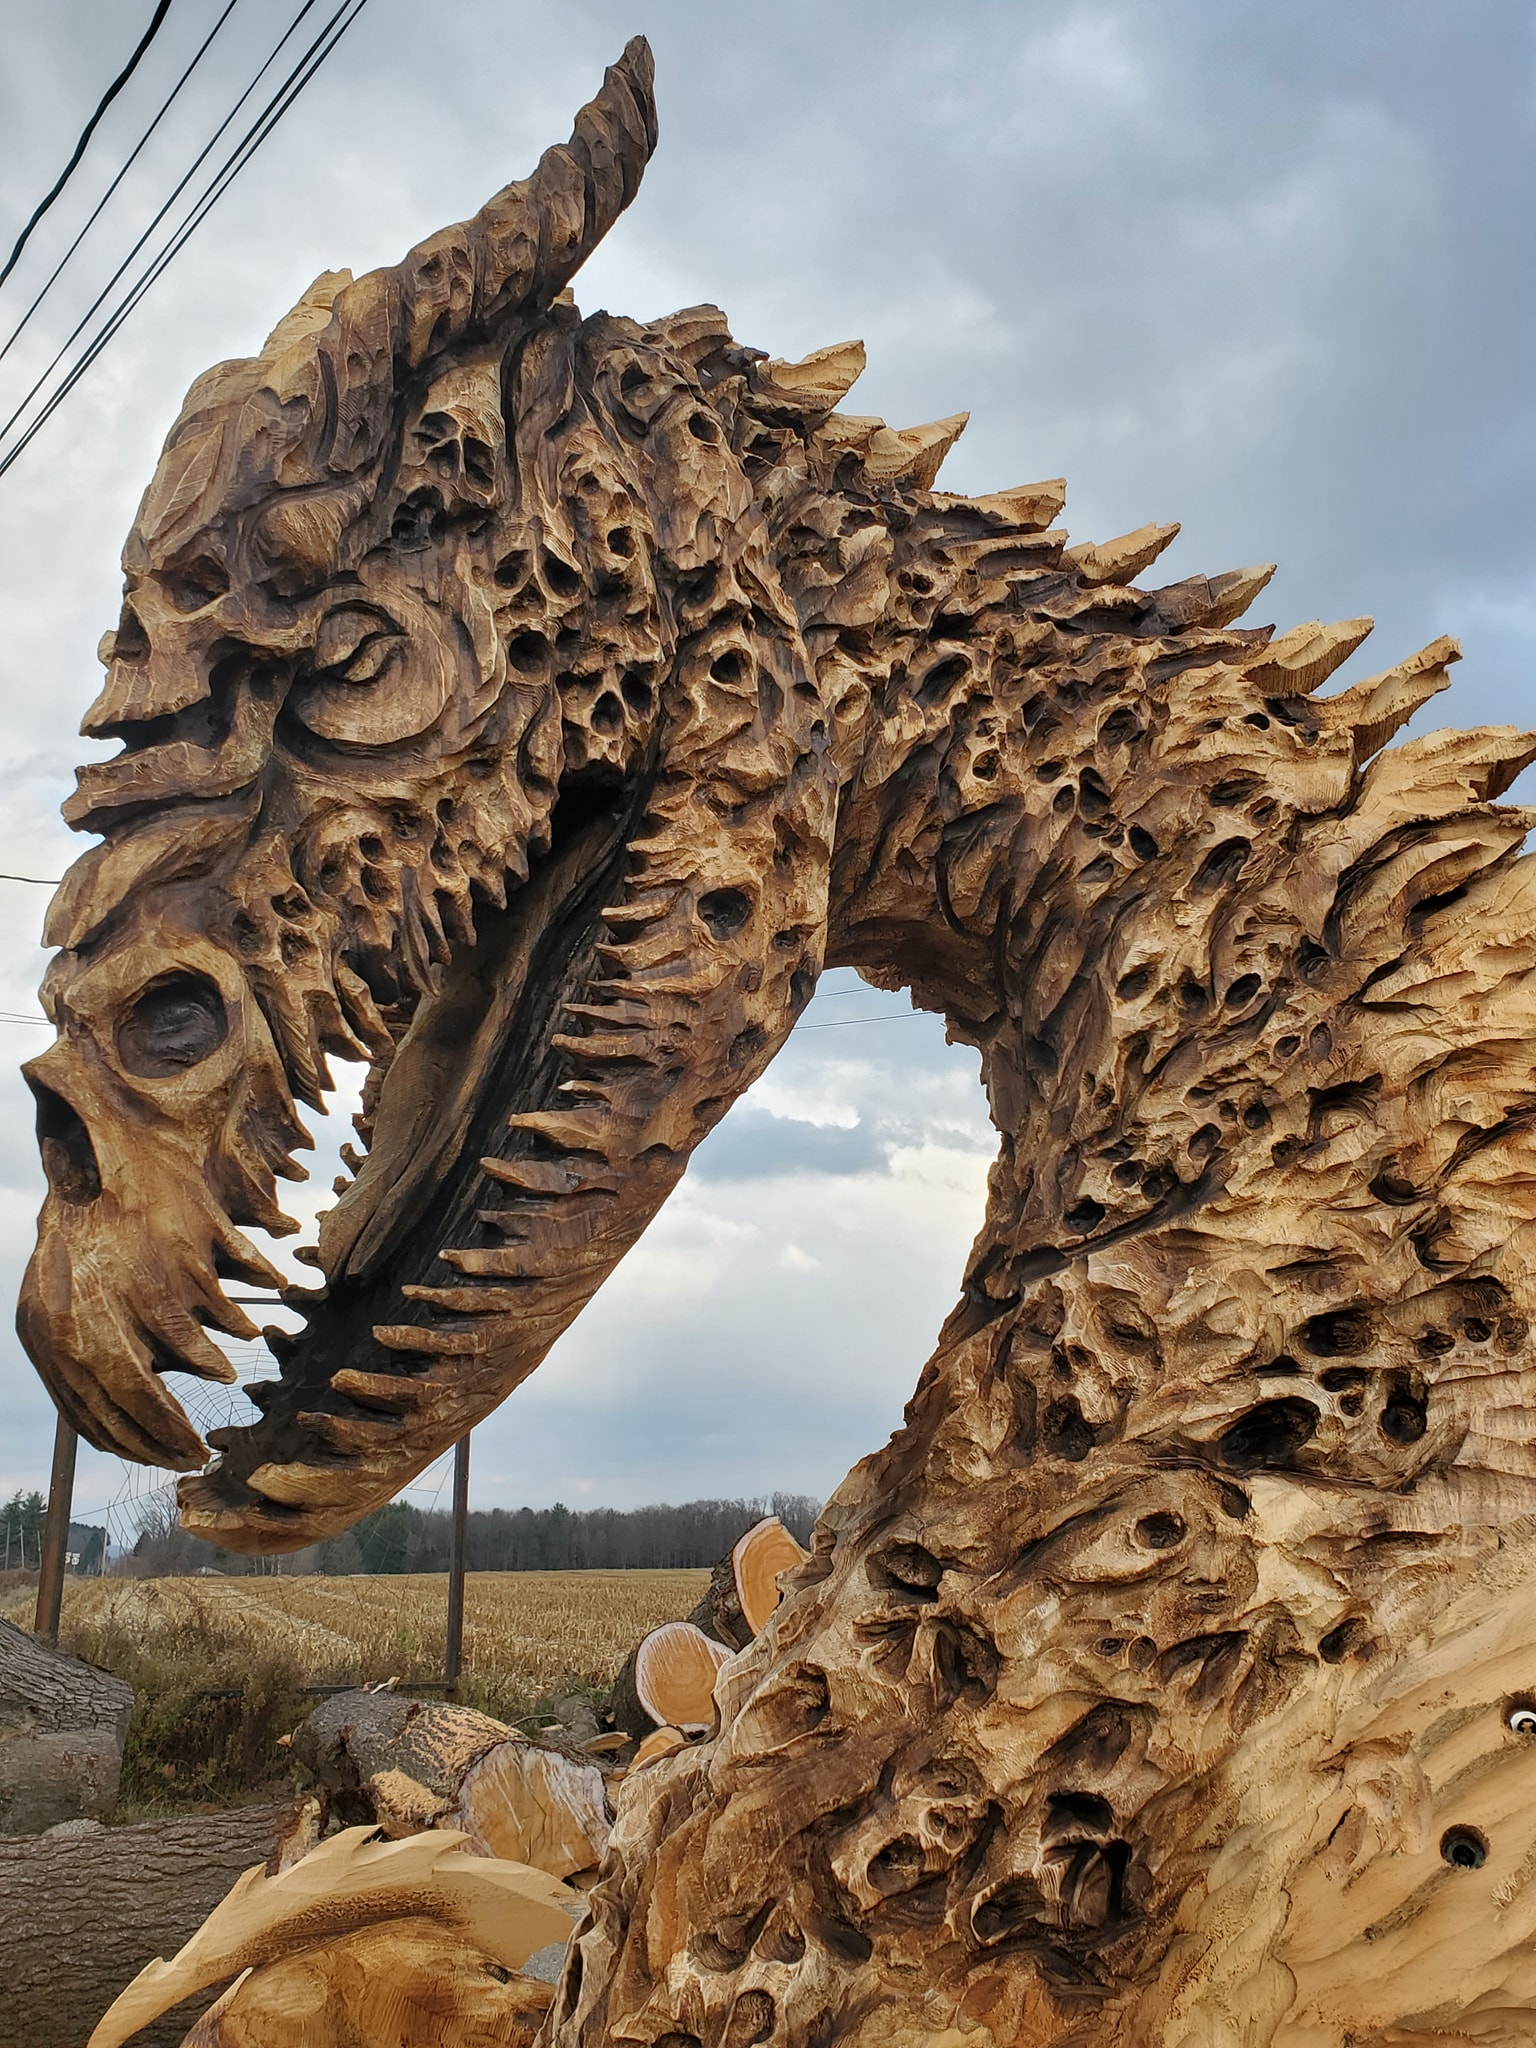 what are your influences? Photo shows an intricate wood sculpture of a dinosaur by Scoot Dow. Scott is one of the chainsaw artists admired by fellow sculptor Simon O'Rourke